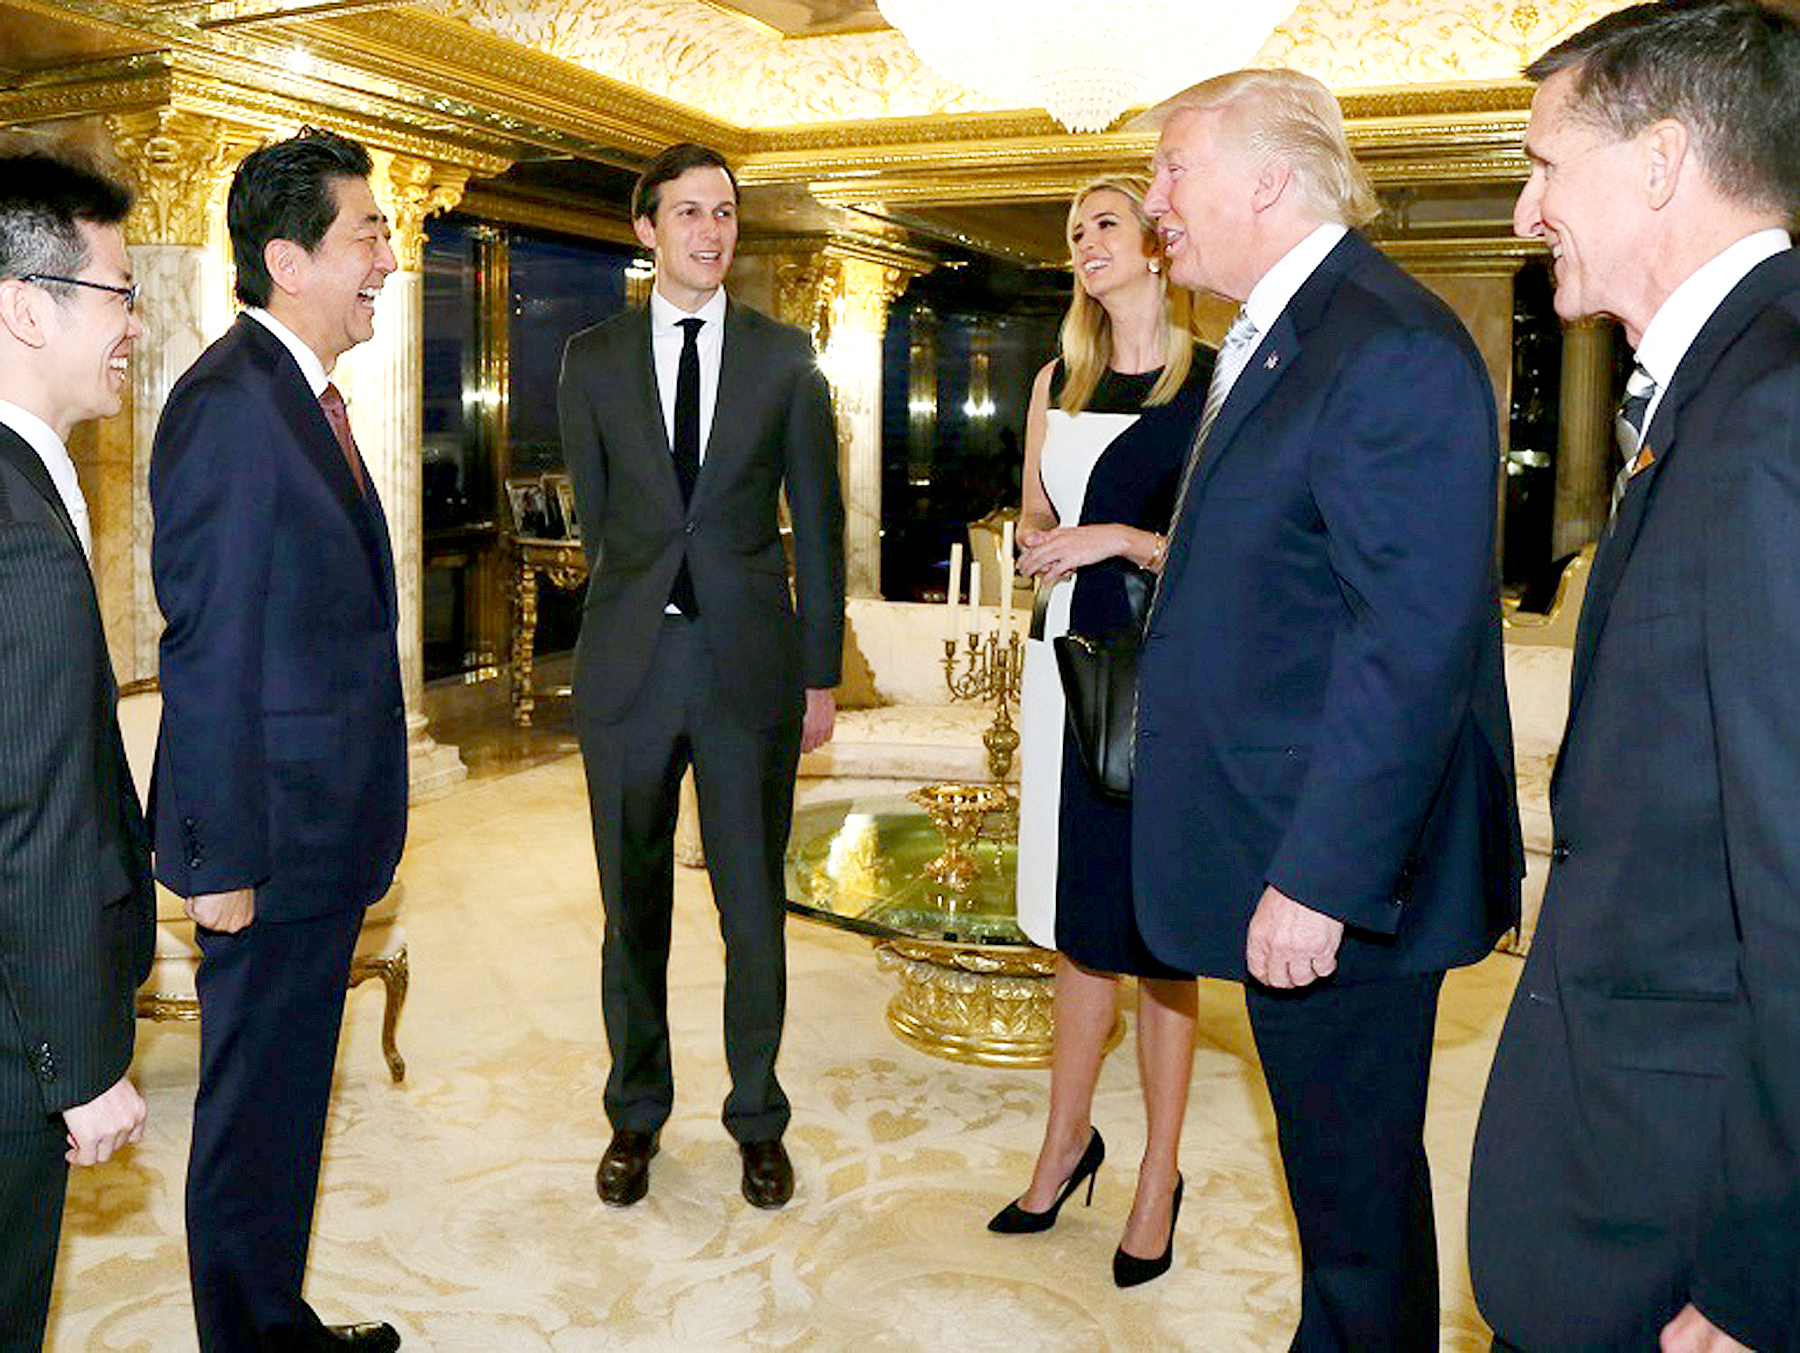 Japanese Prime Minister Shinzo Abe, second from left, chats with U.S. President-elect Donald Trump, second from right, during a meeting as Ivanka Trump, third from right, the oldest daughter of Donald Trump, and her husband, Jared Kushner.